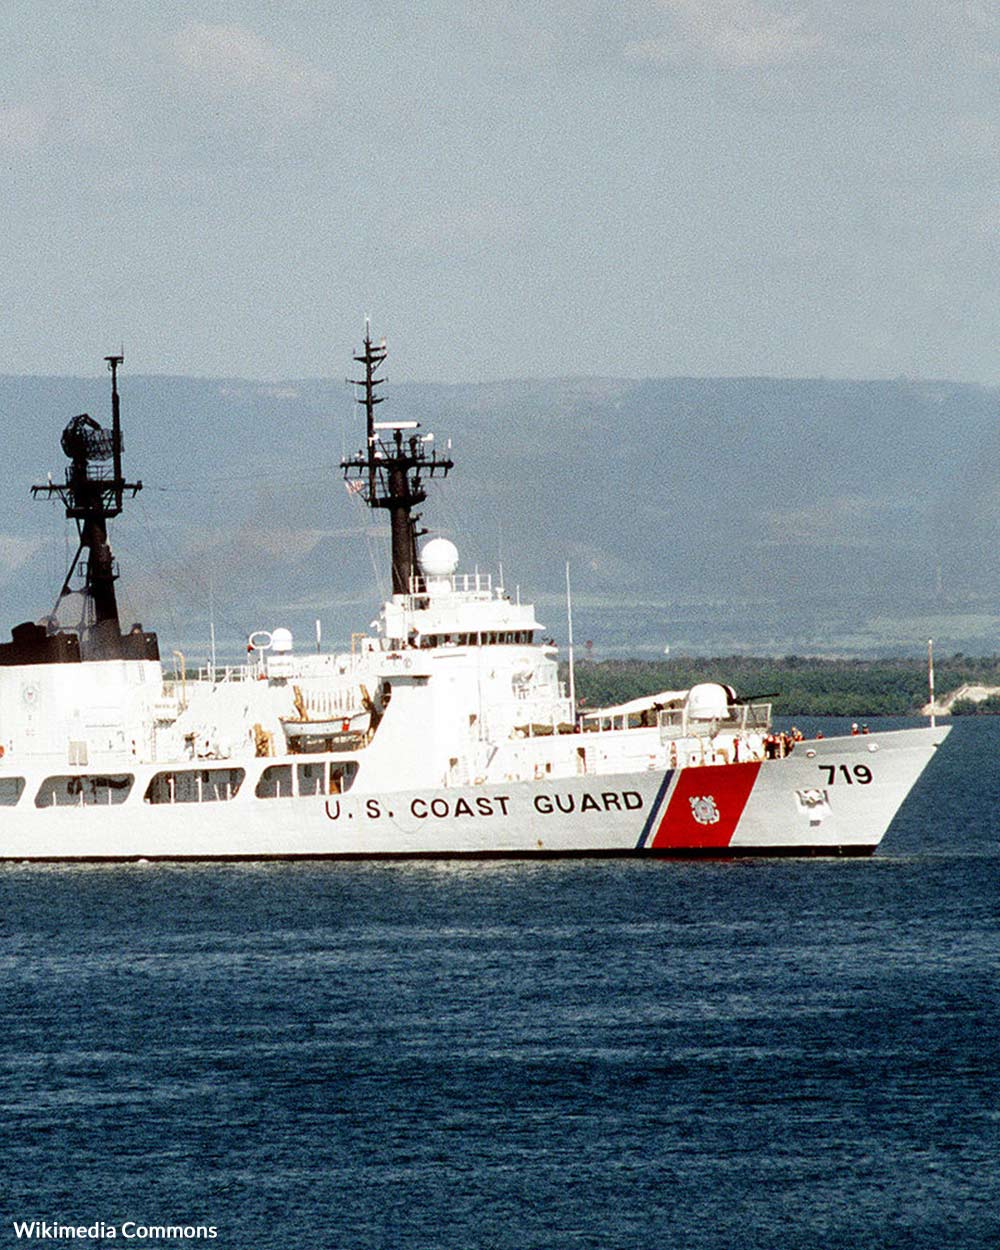 The U.S. Coast Guard Cutter BOUTWELL leaves the Haitian safe haven with Haitian repatriates on board.